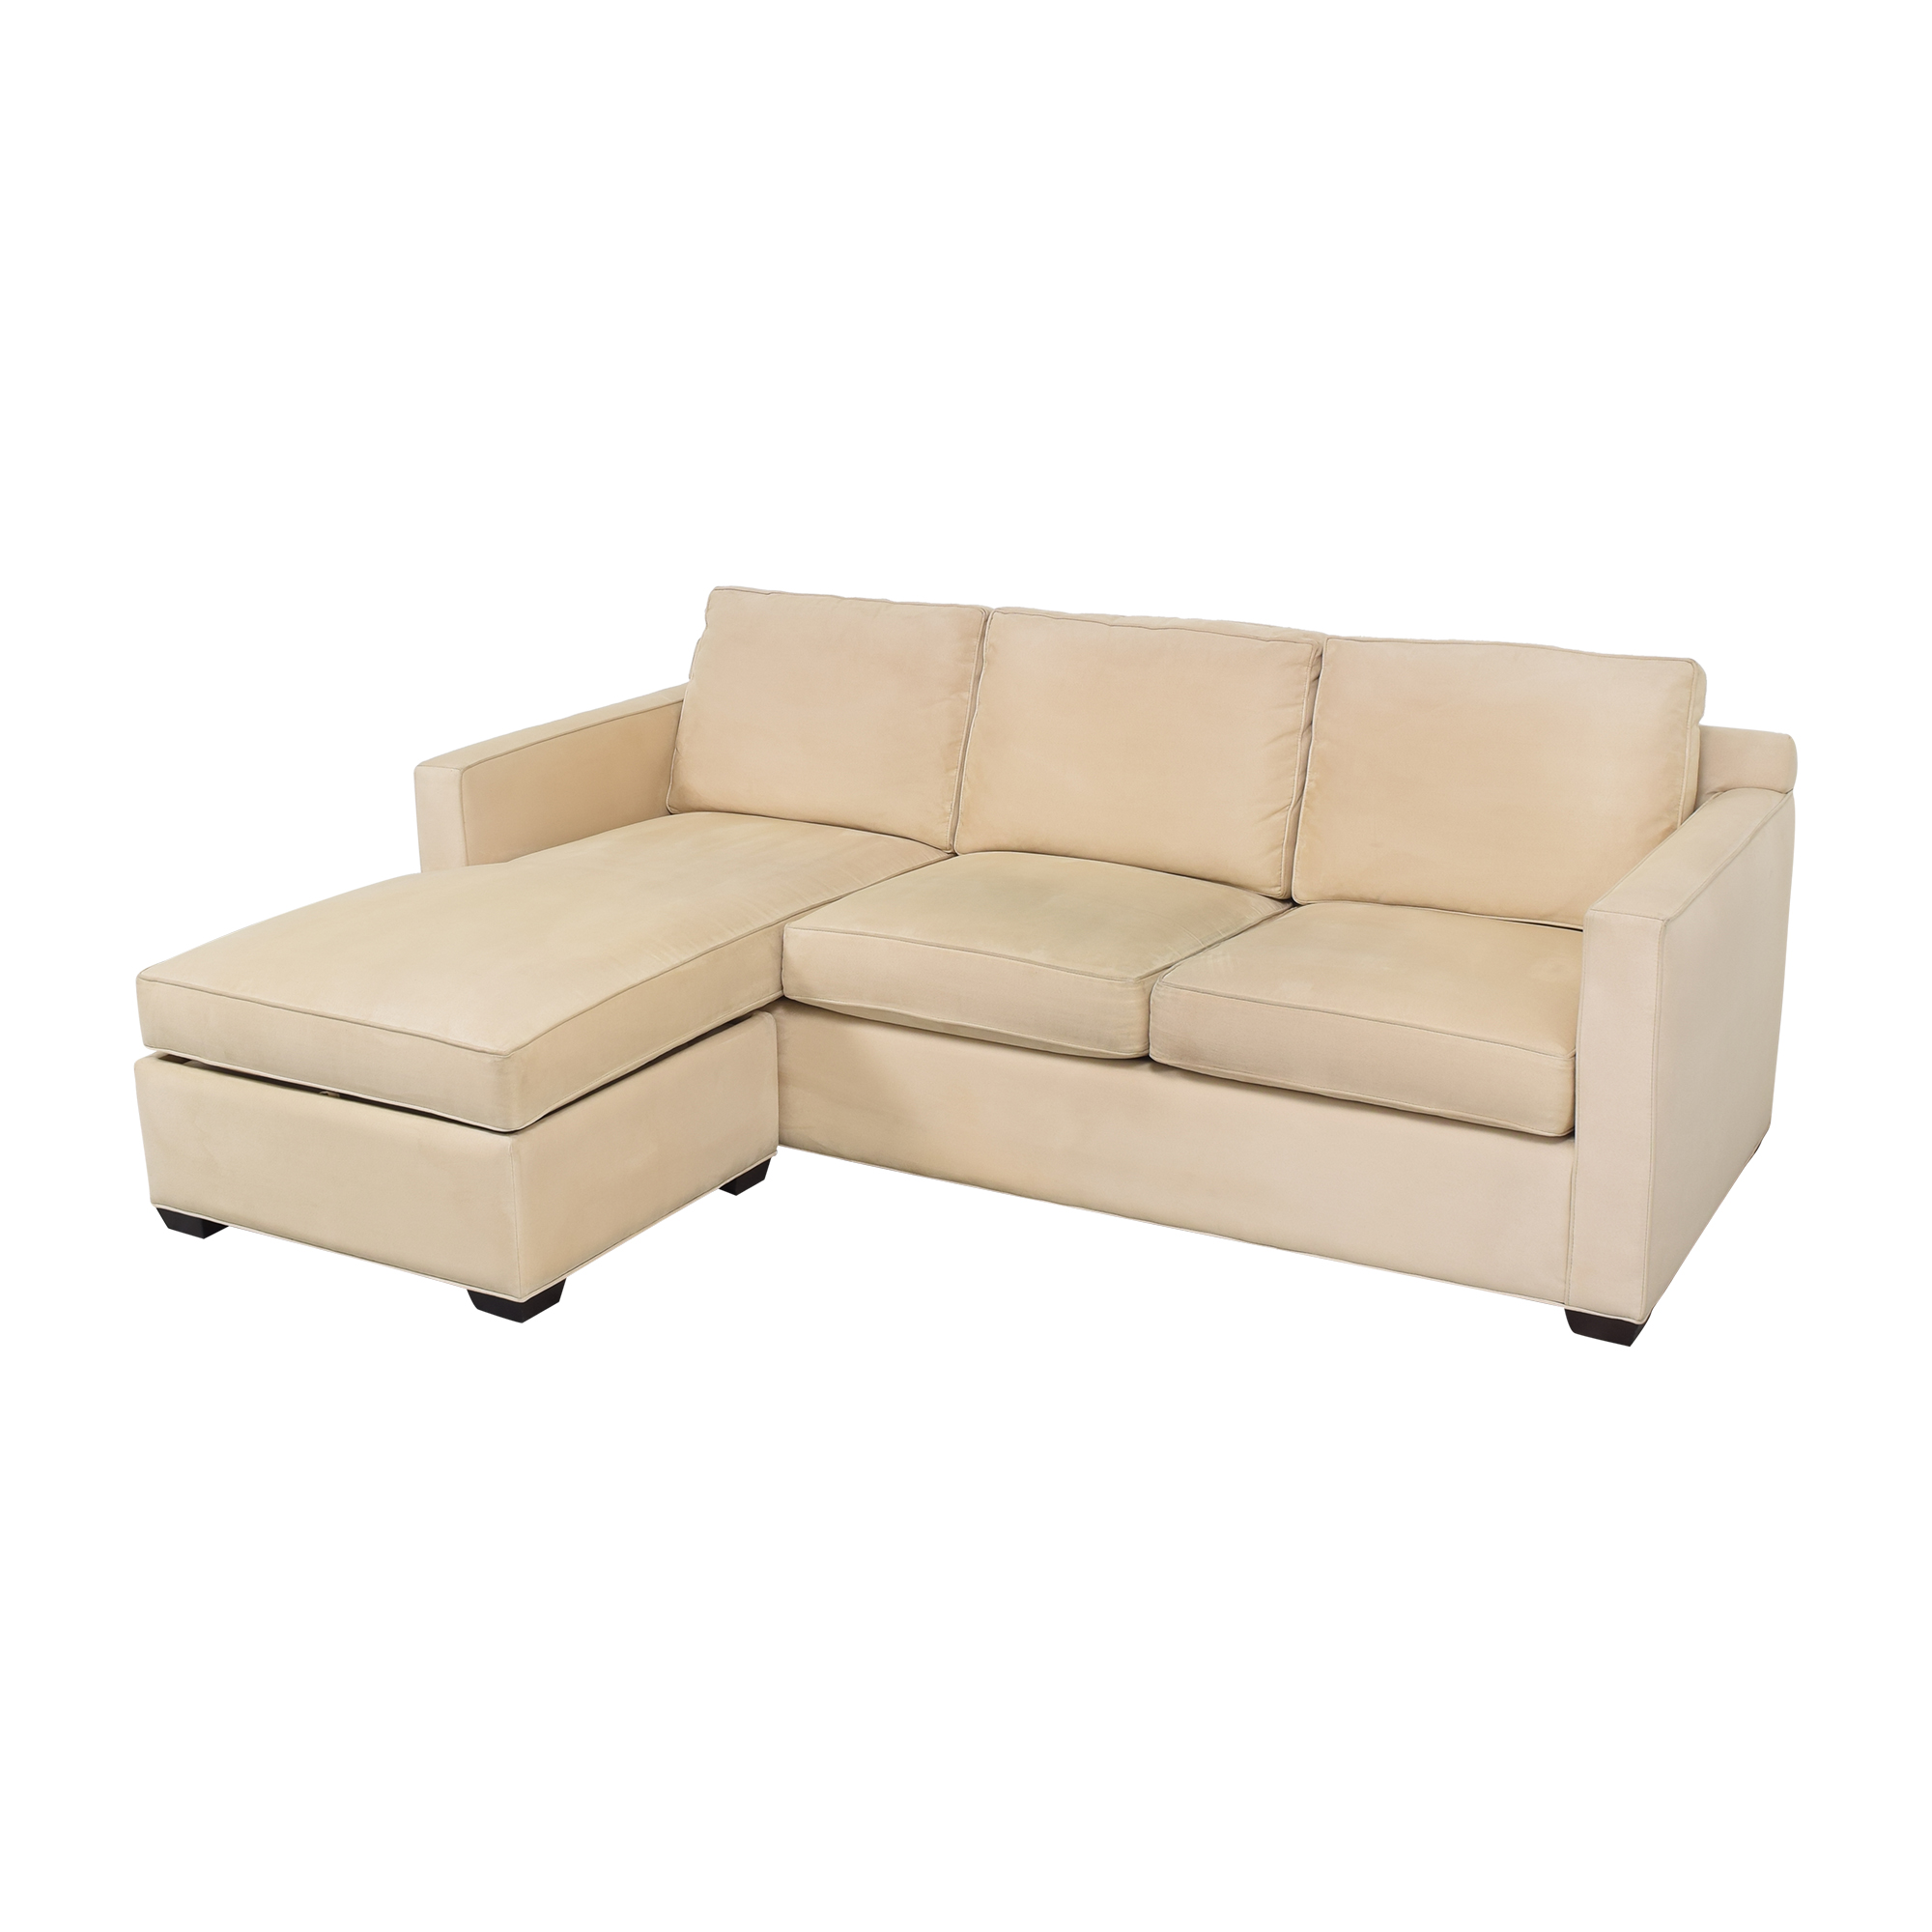 Crate and Barrel Chaise Sectional Sofa Crate & Barrel